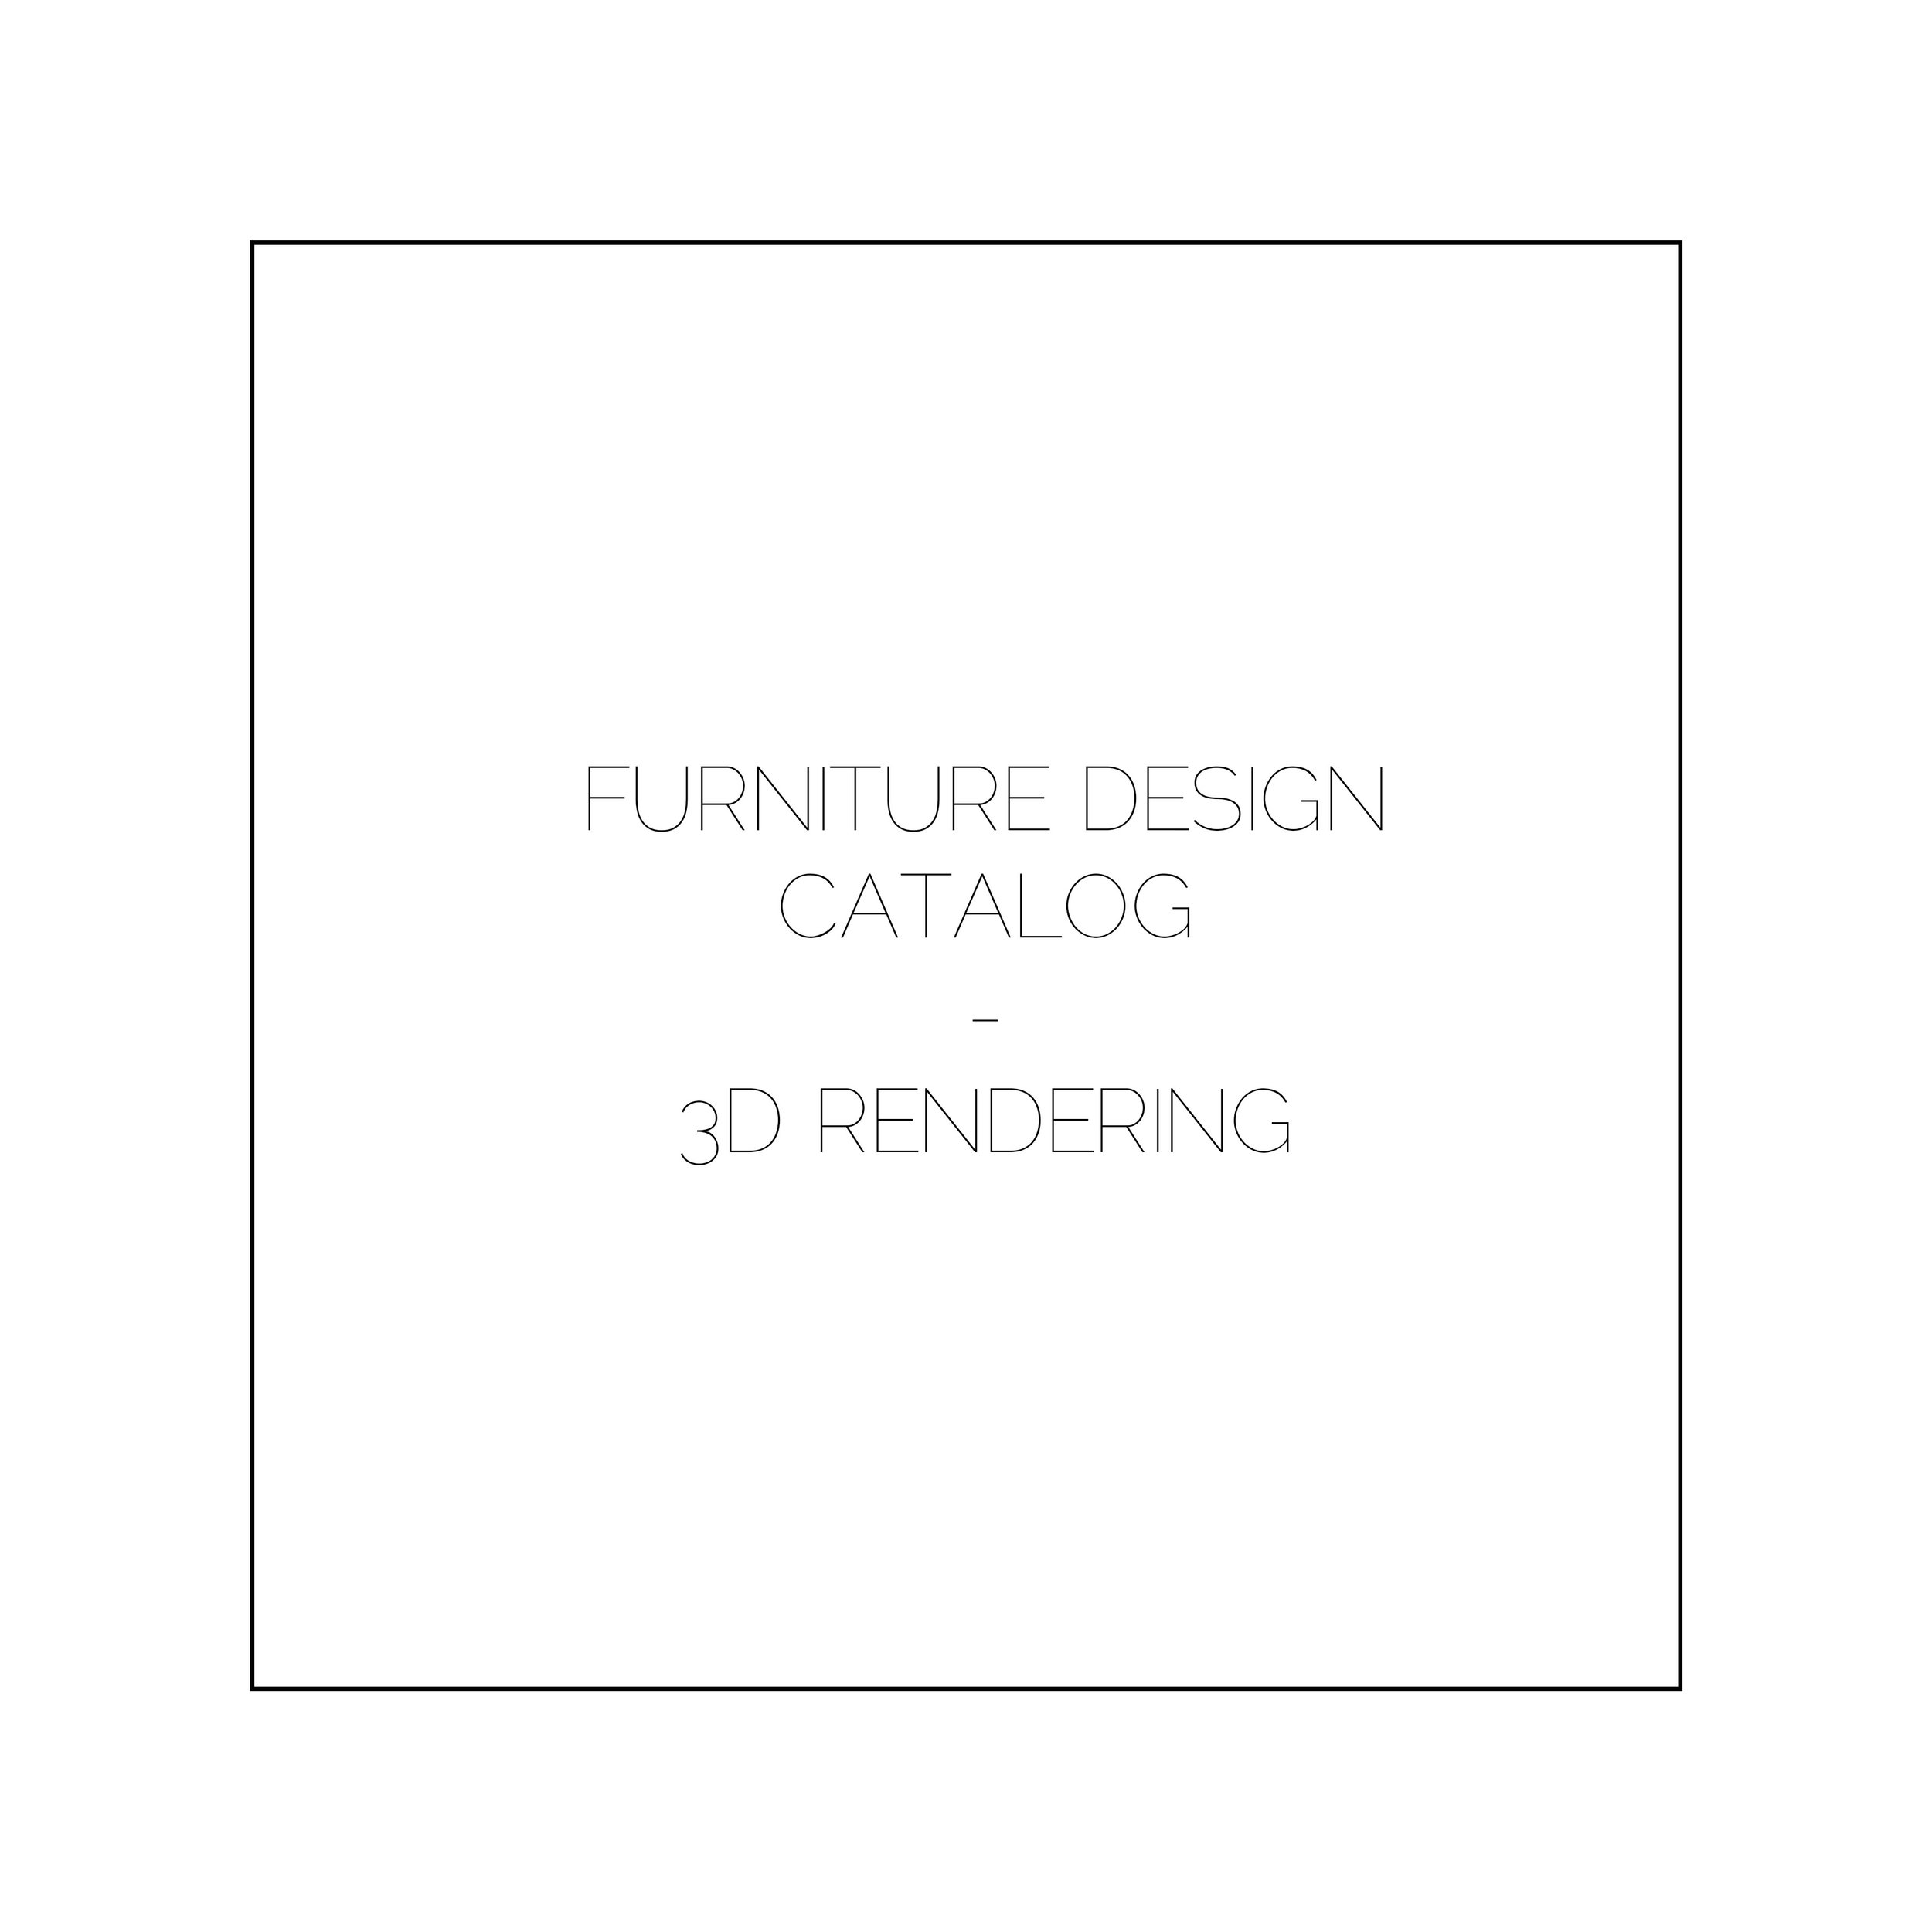 Furniture Design Cover.jpg